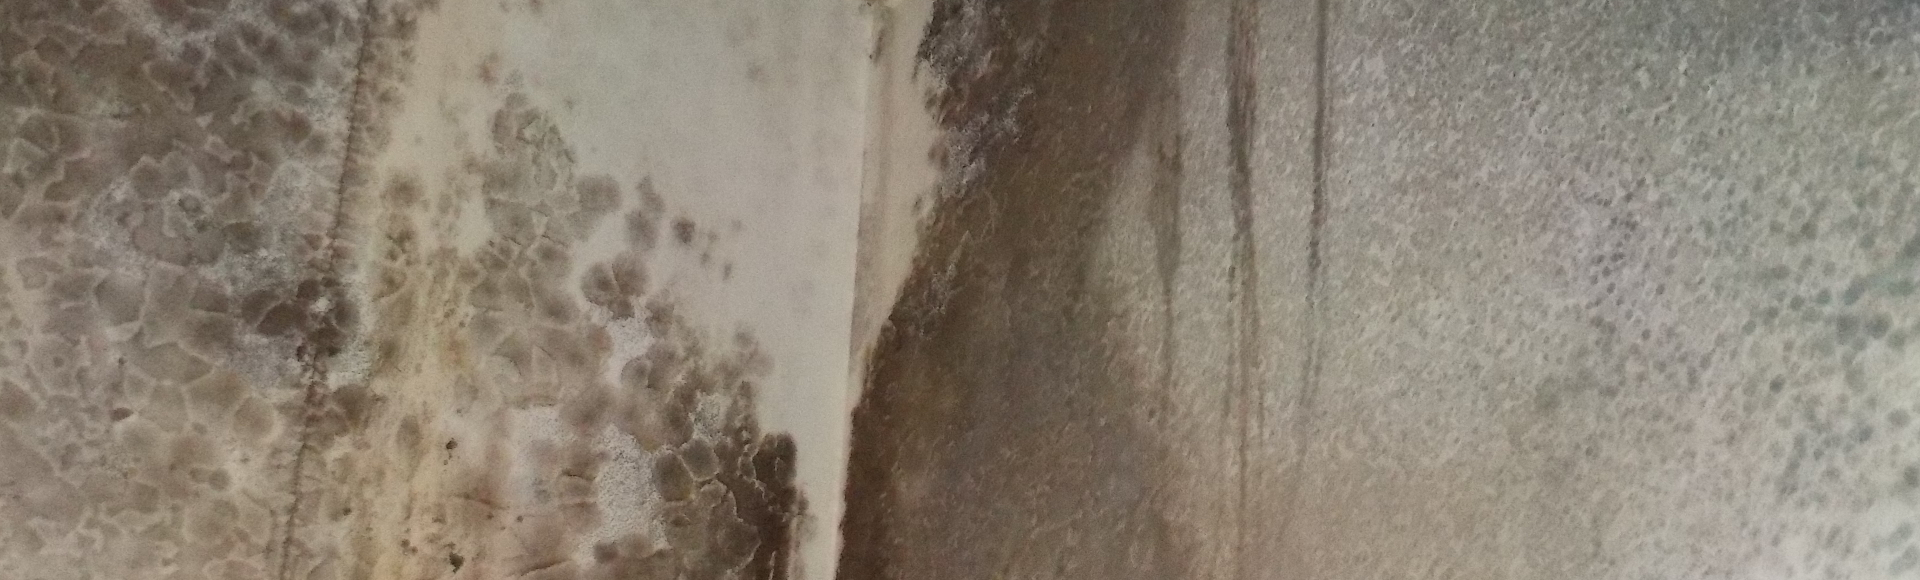 Black Mold Removal Mold remediation   Dependable Remediation Services